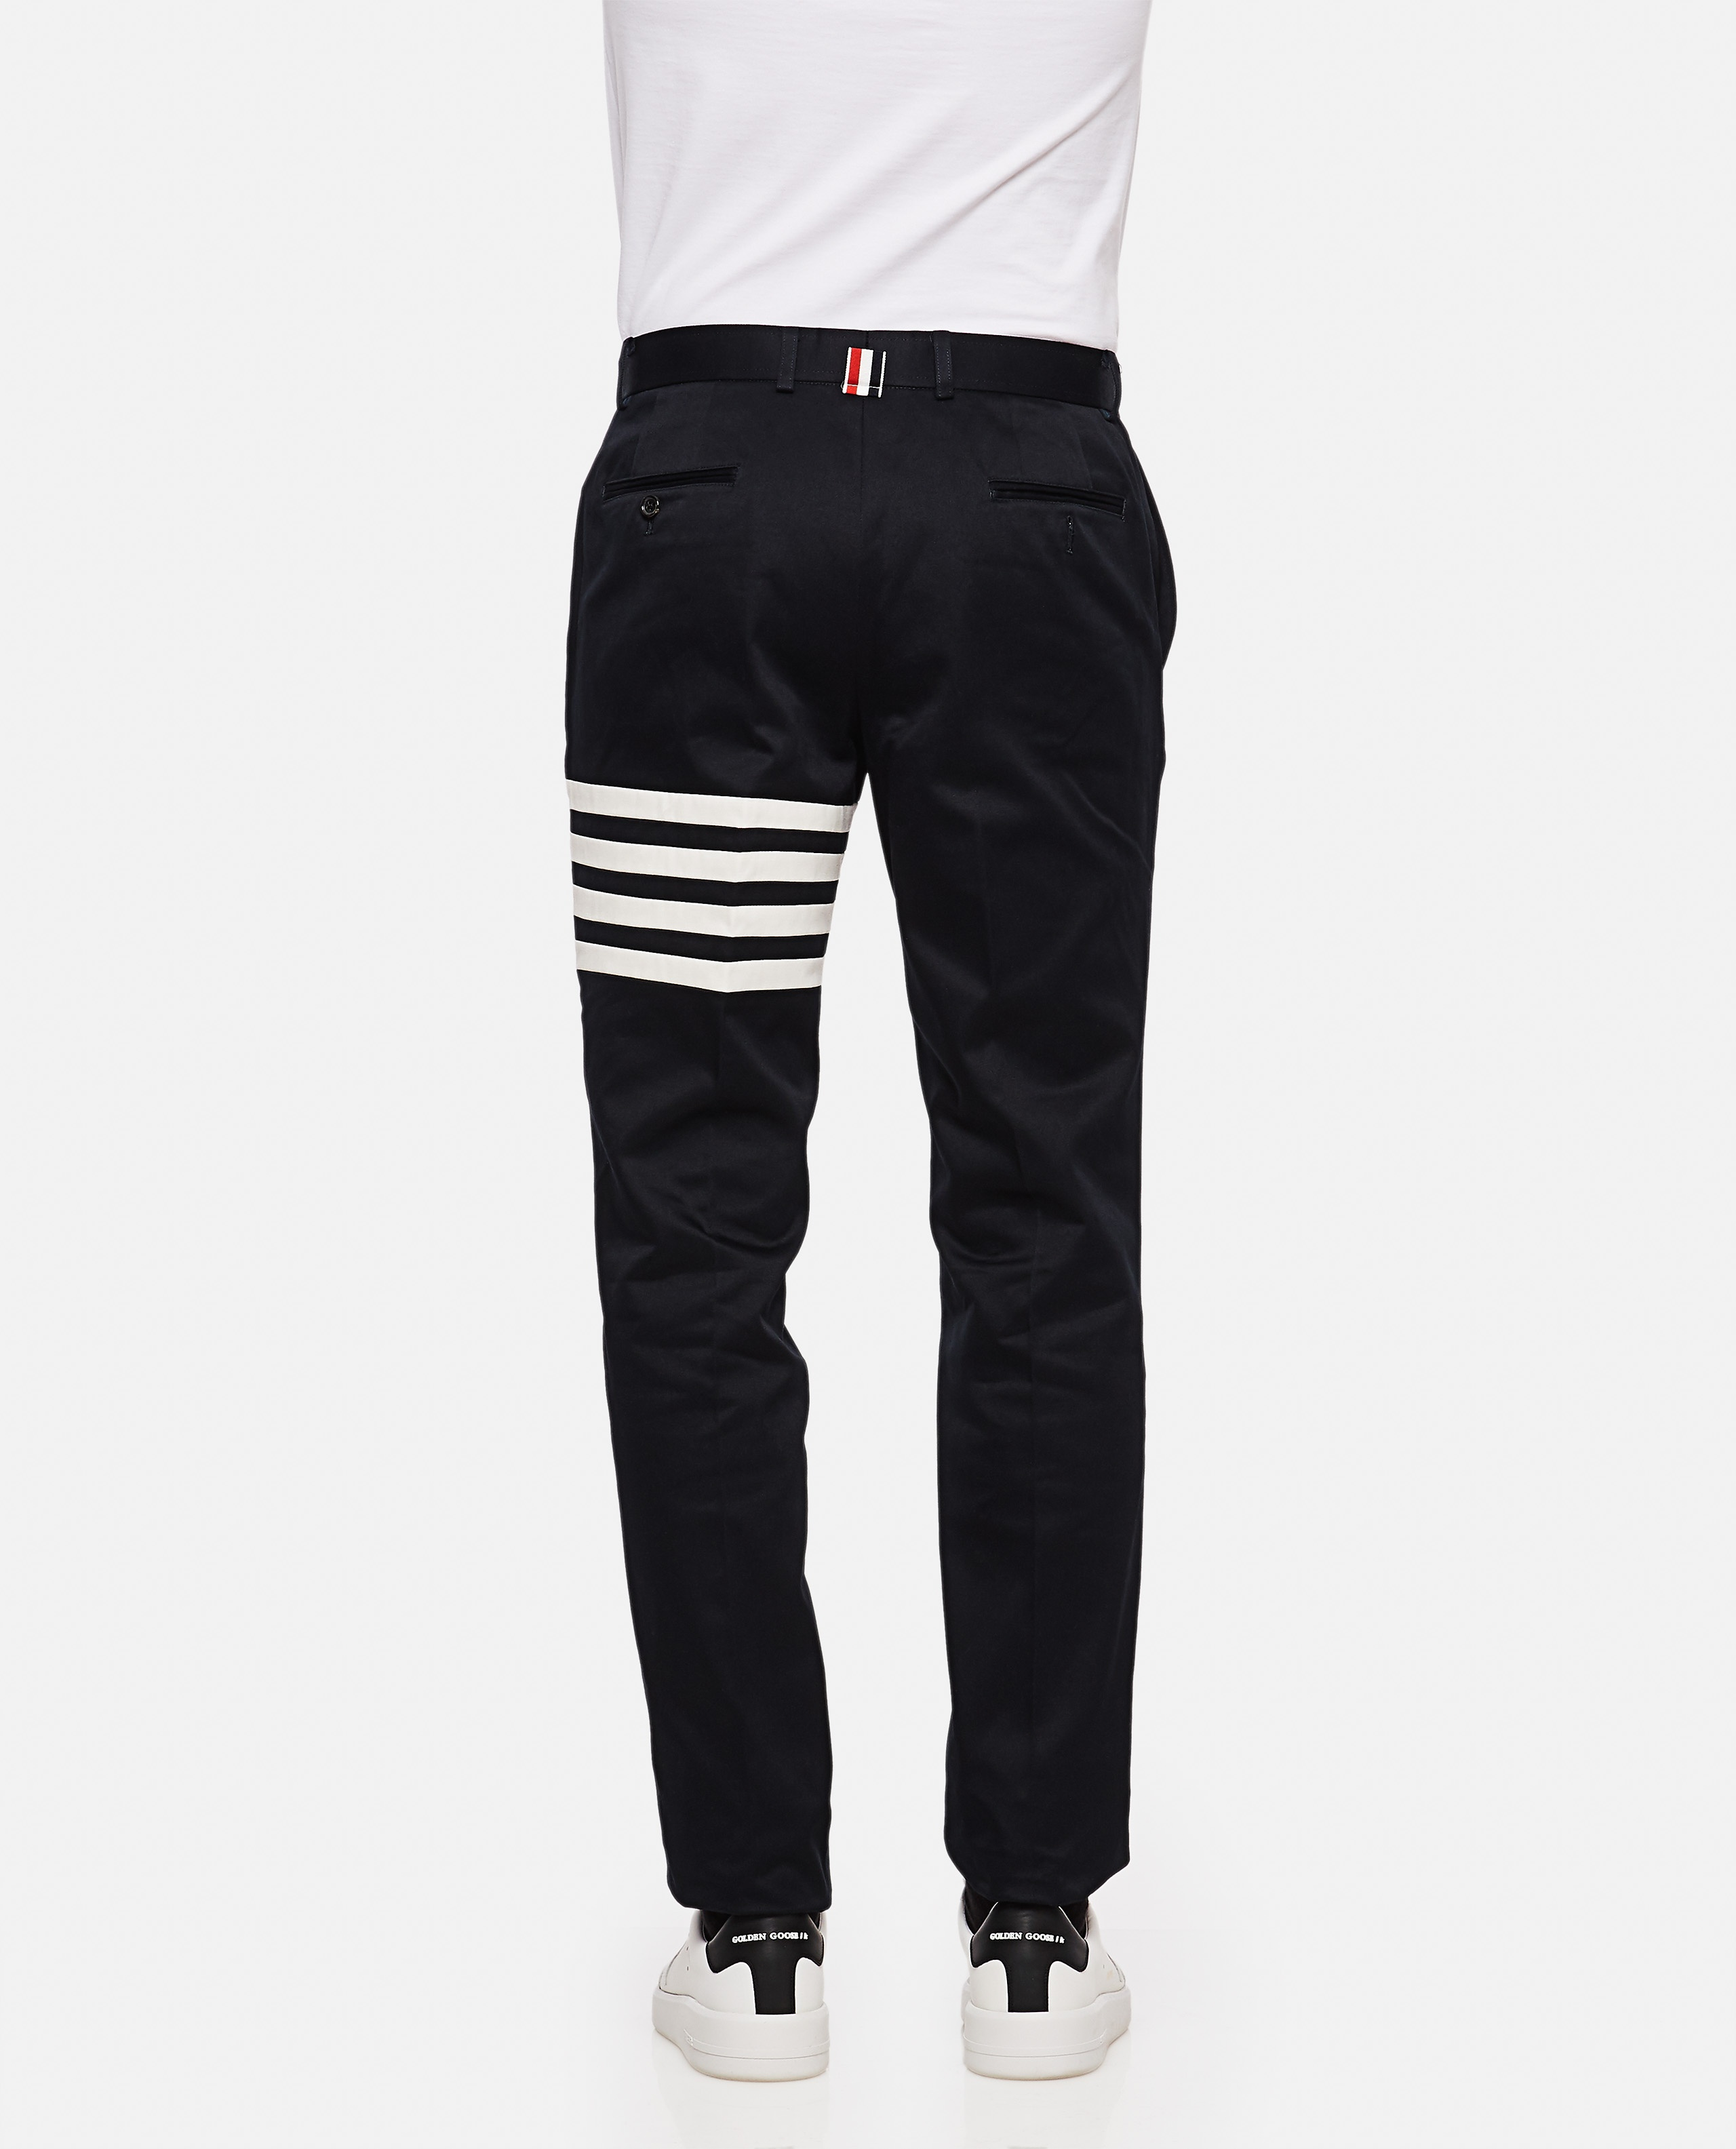 Cotton twill chino trousers Men Thom Browne 000110820016816 3